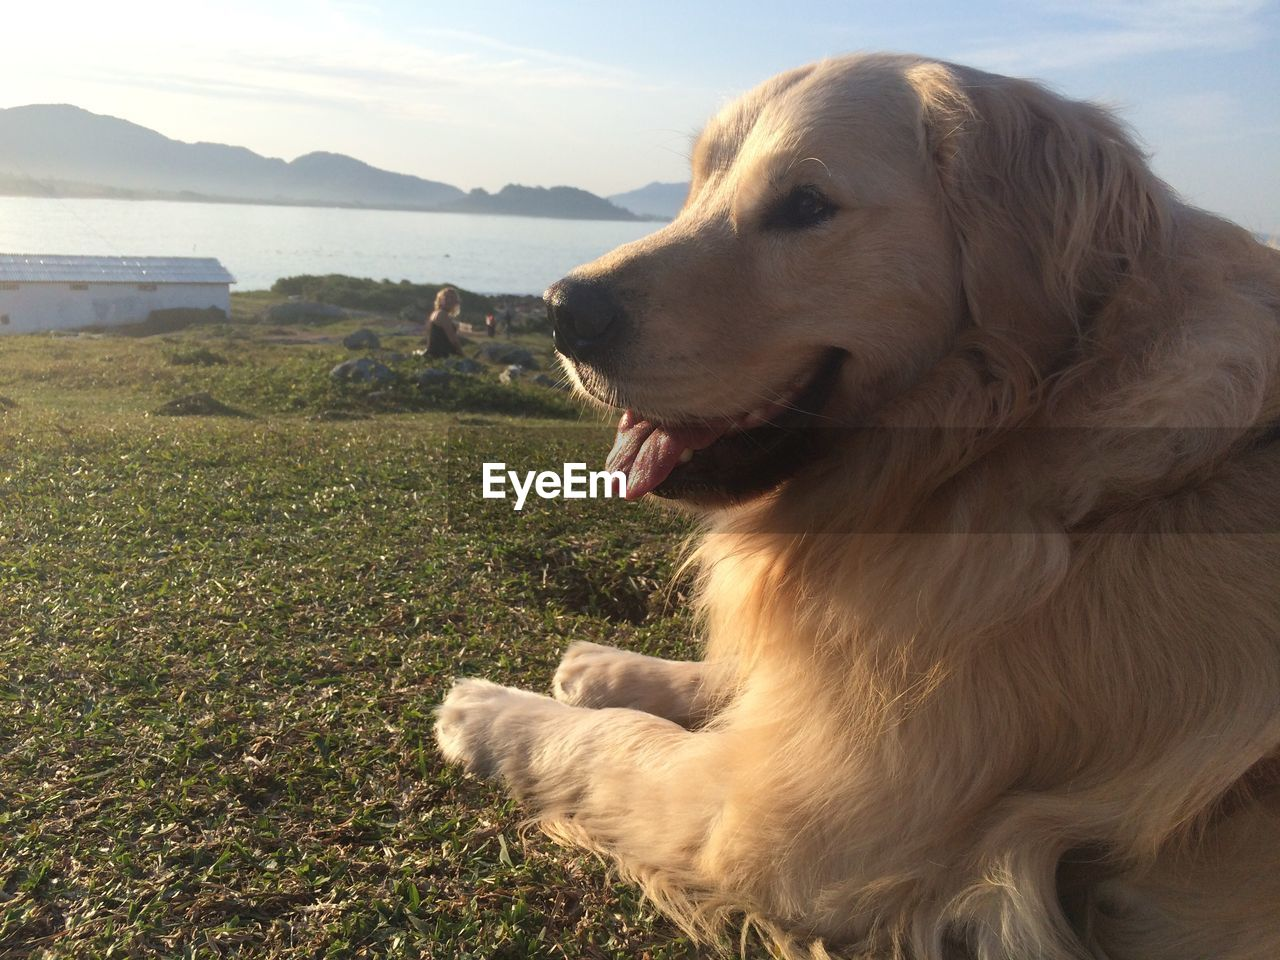 one animal, dog, canine, domestic animals, pets, animal, domestic, animal themes, mammal, vertebrate, looking away, looking, nature, no people, grass, land, day, close-up, water, mouth open, outdoors, animal head